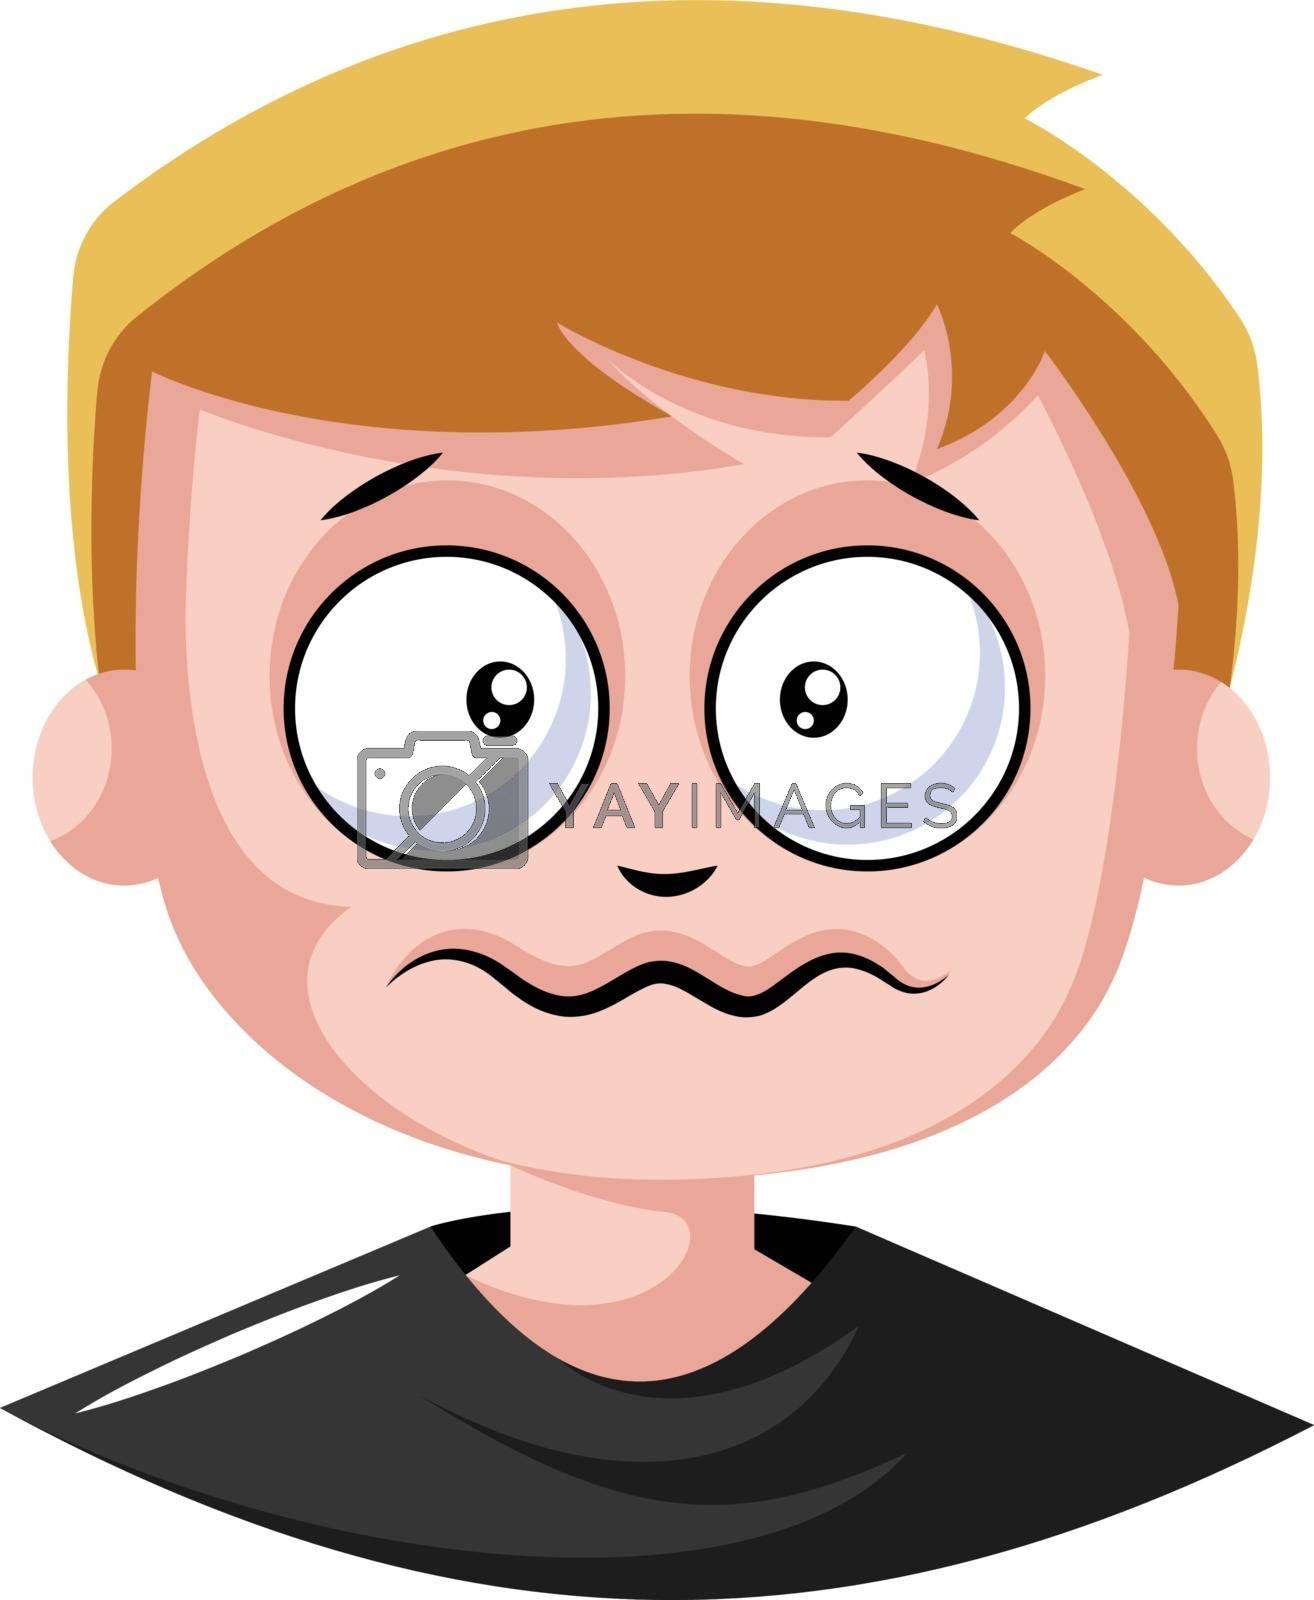 Royalty free image of This young man is anxsious illustration vector on white backgrou by Morphart